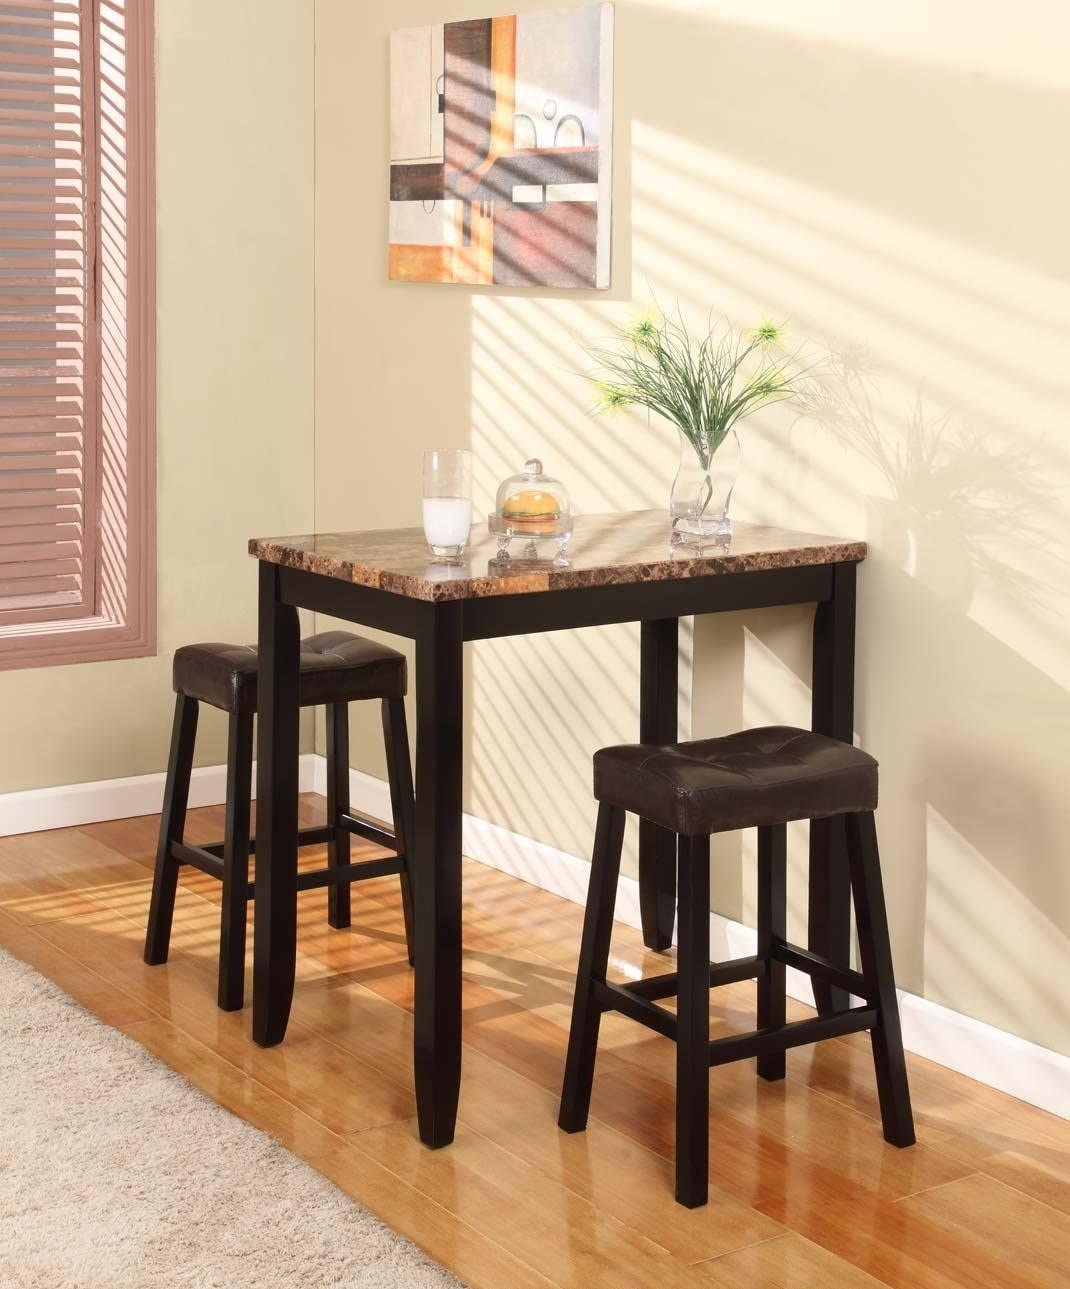 3 Piece Counter Height Pub Table Set & Counter Height Pub Table Sets - Foter